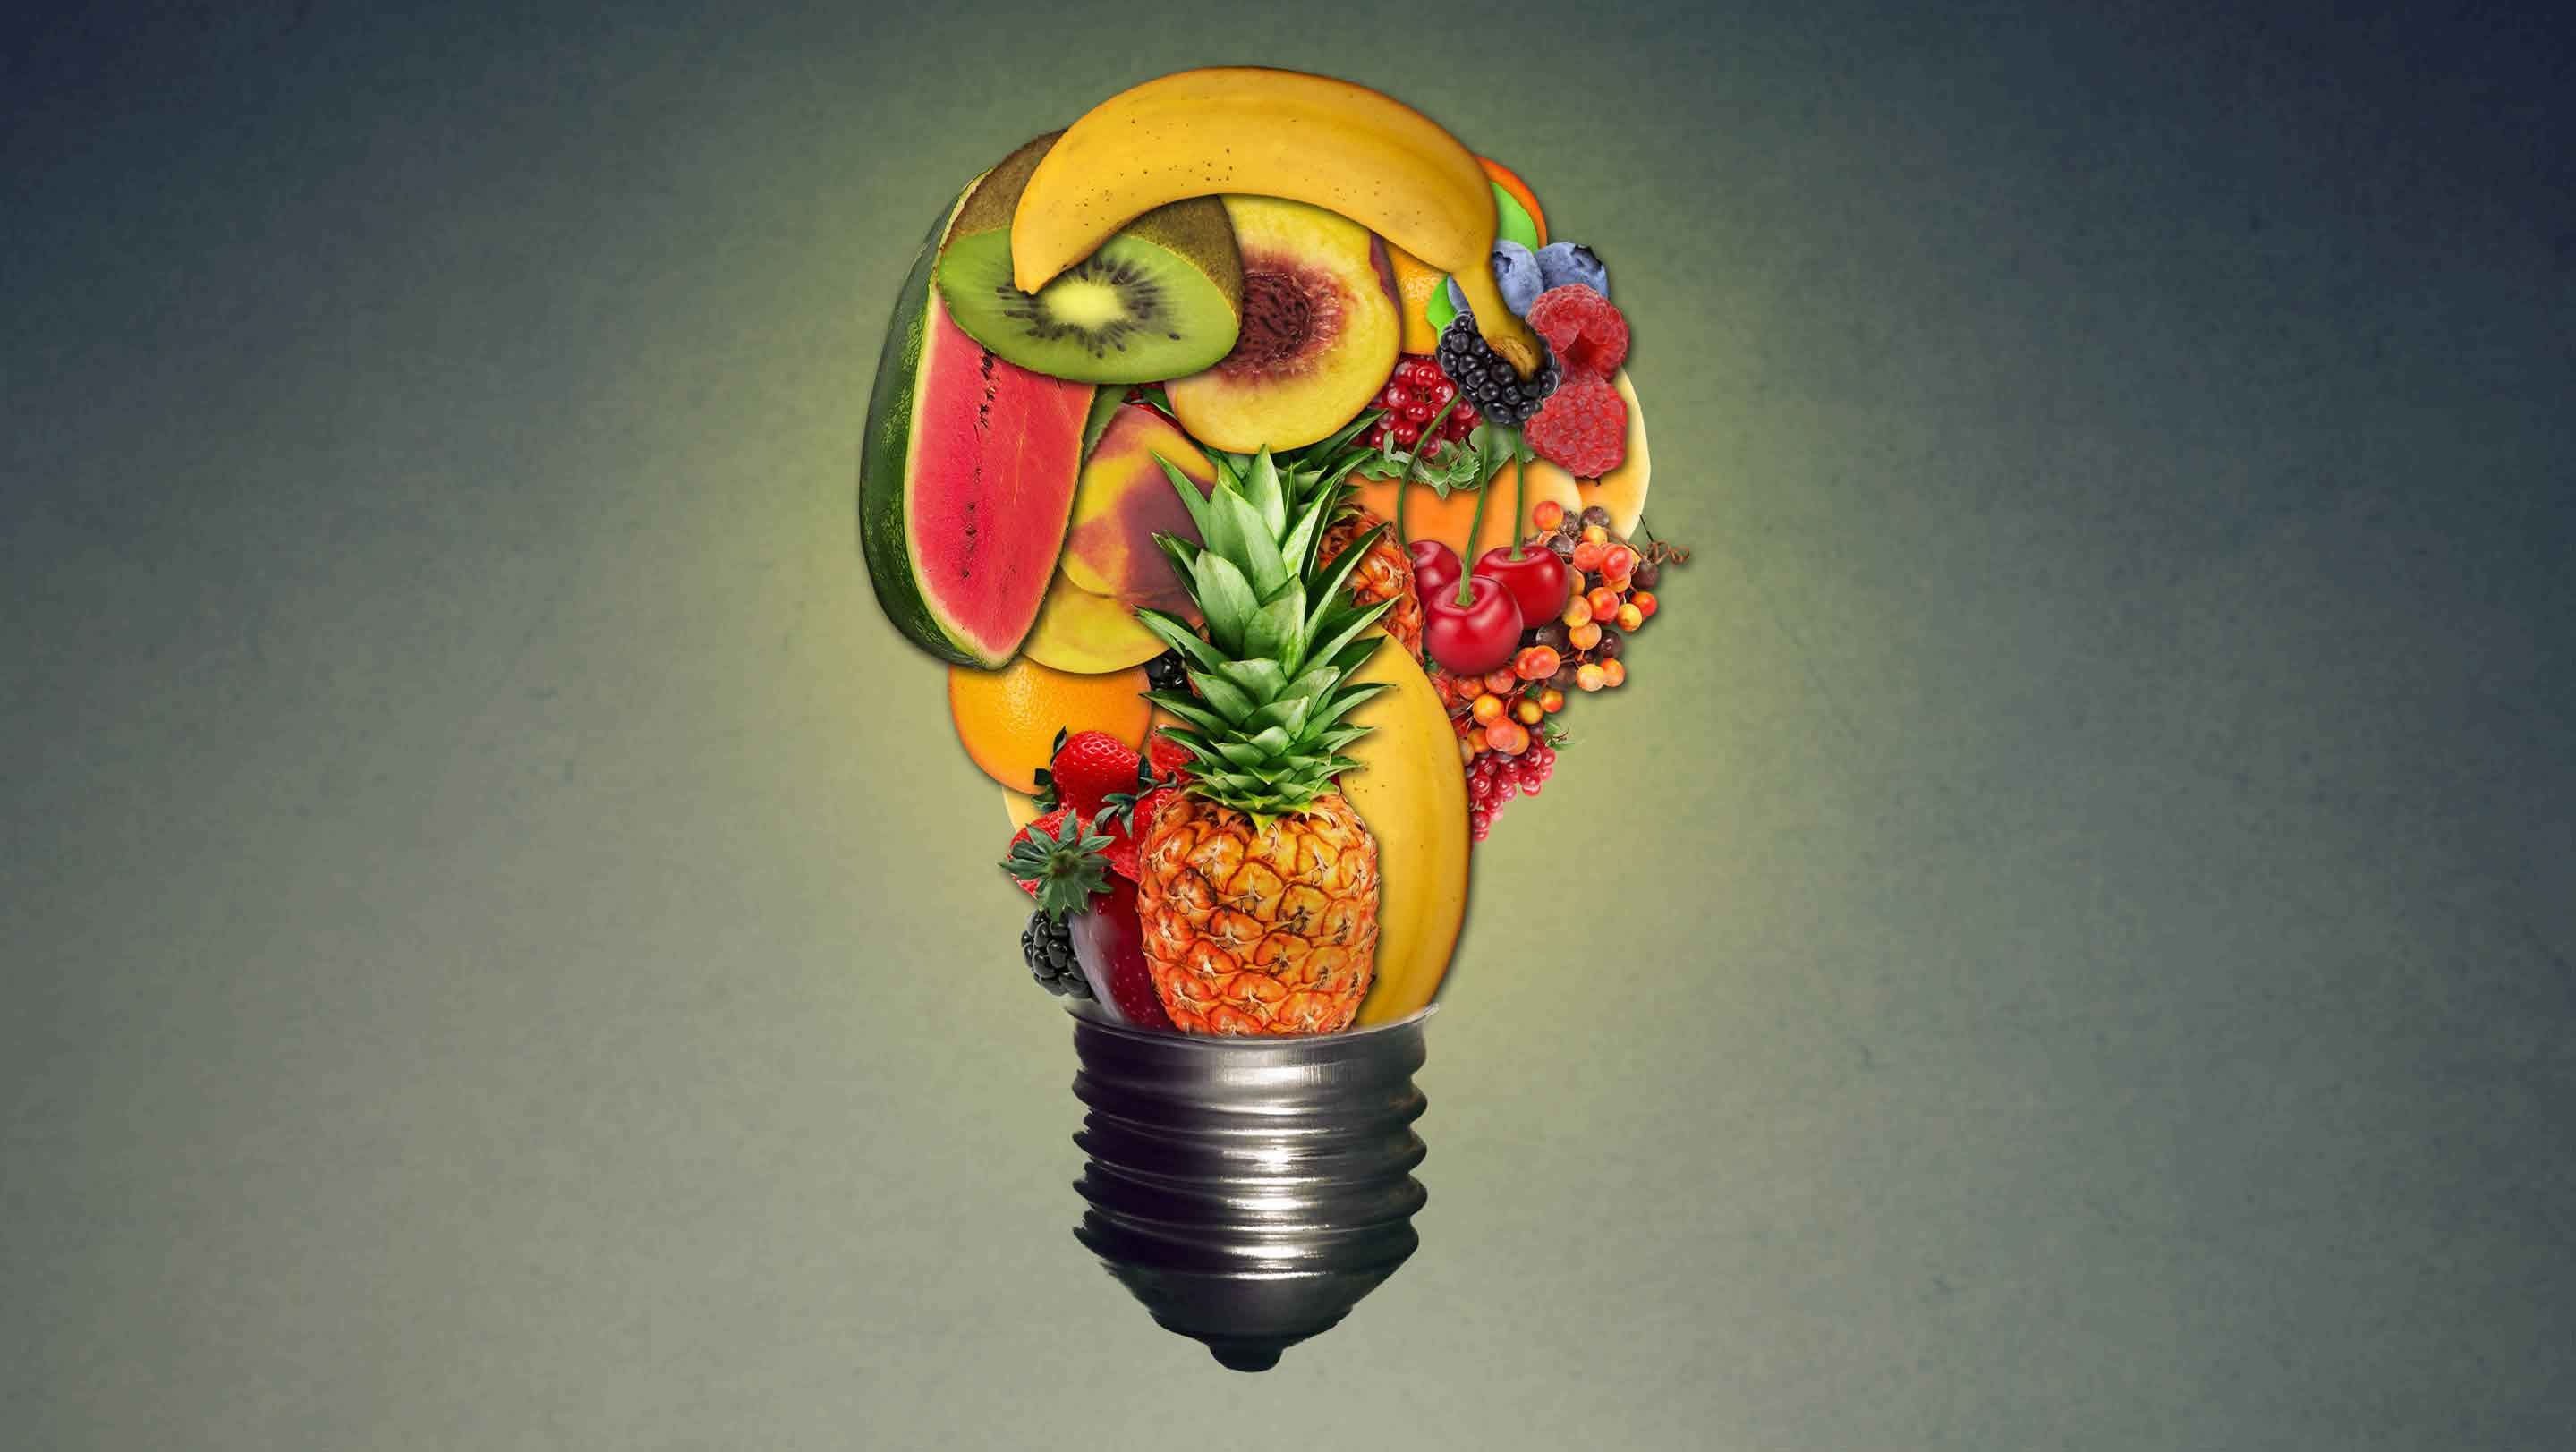 Abstract food in a light bulb shape